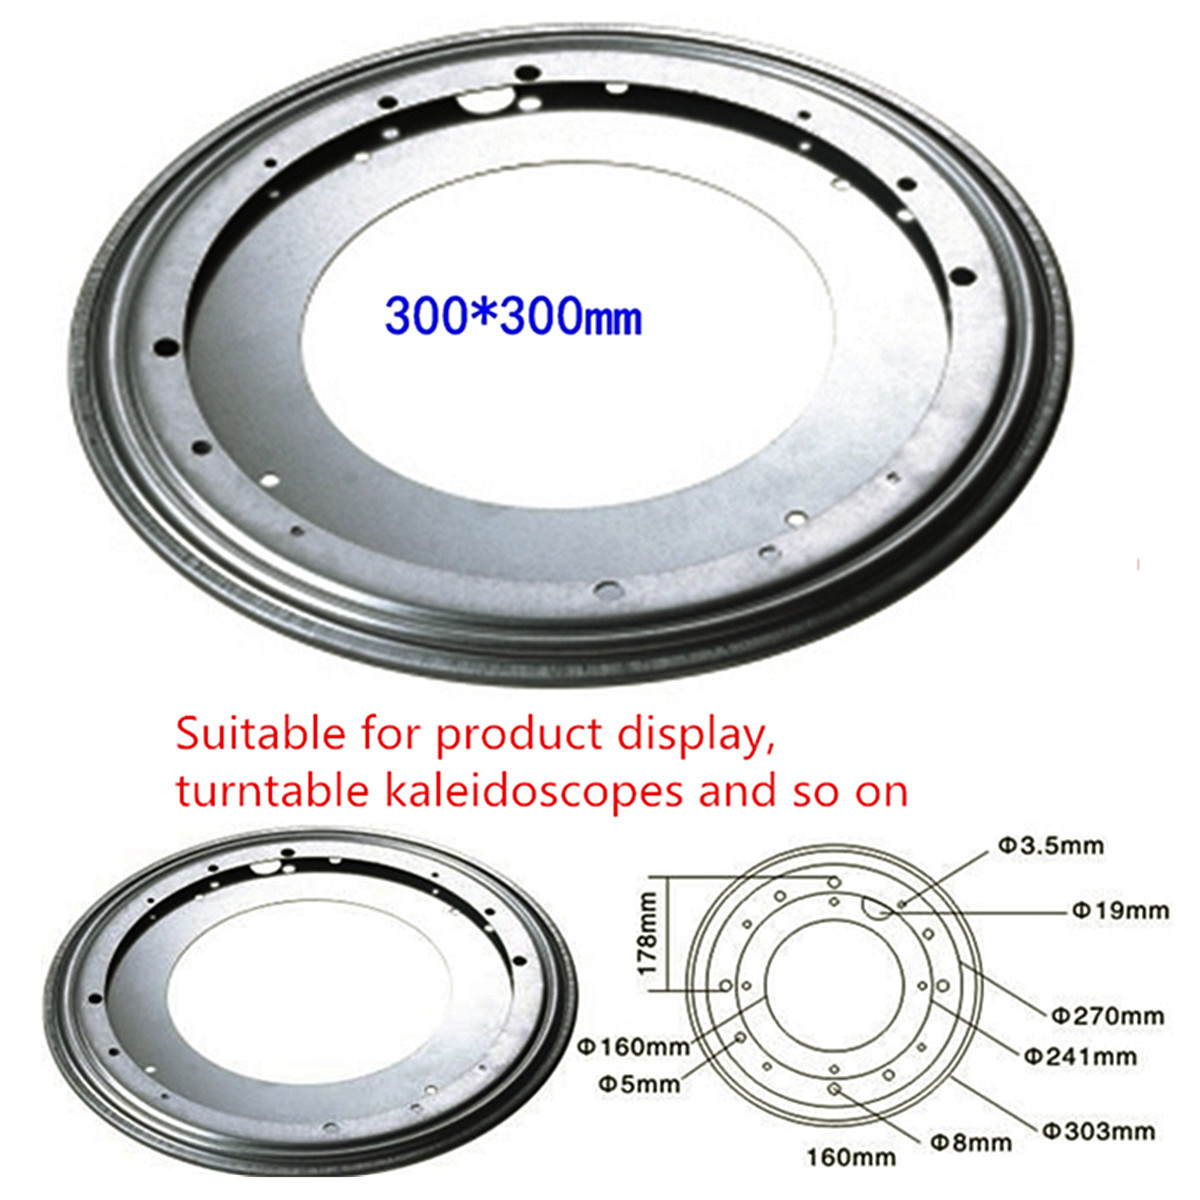 3 SIze Heavy   Metal Bearing Rotating Swivel-Turntable Plate For TV Rack Desk Table Smoothly Square/Round for Corner Cabinets bangle